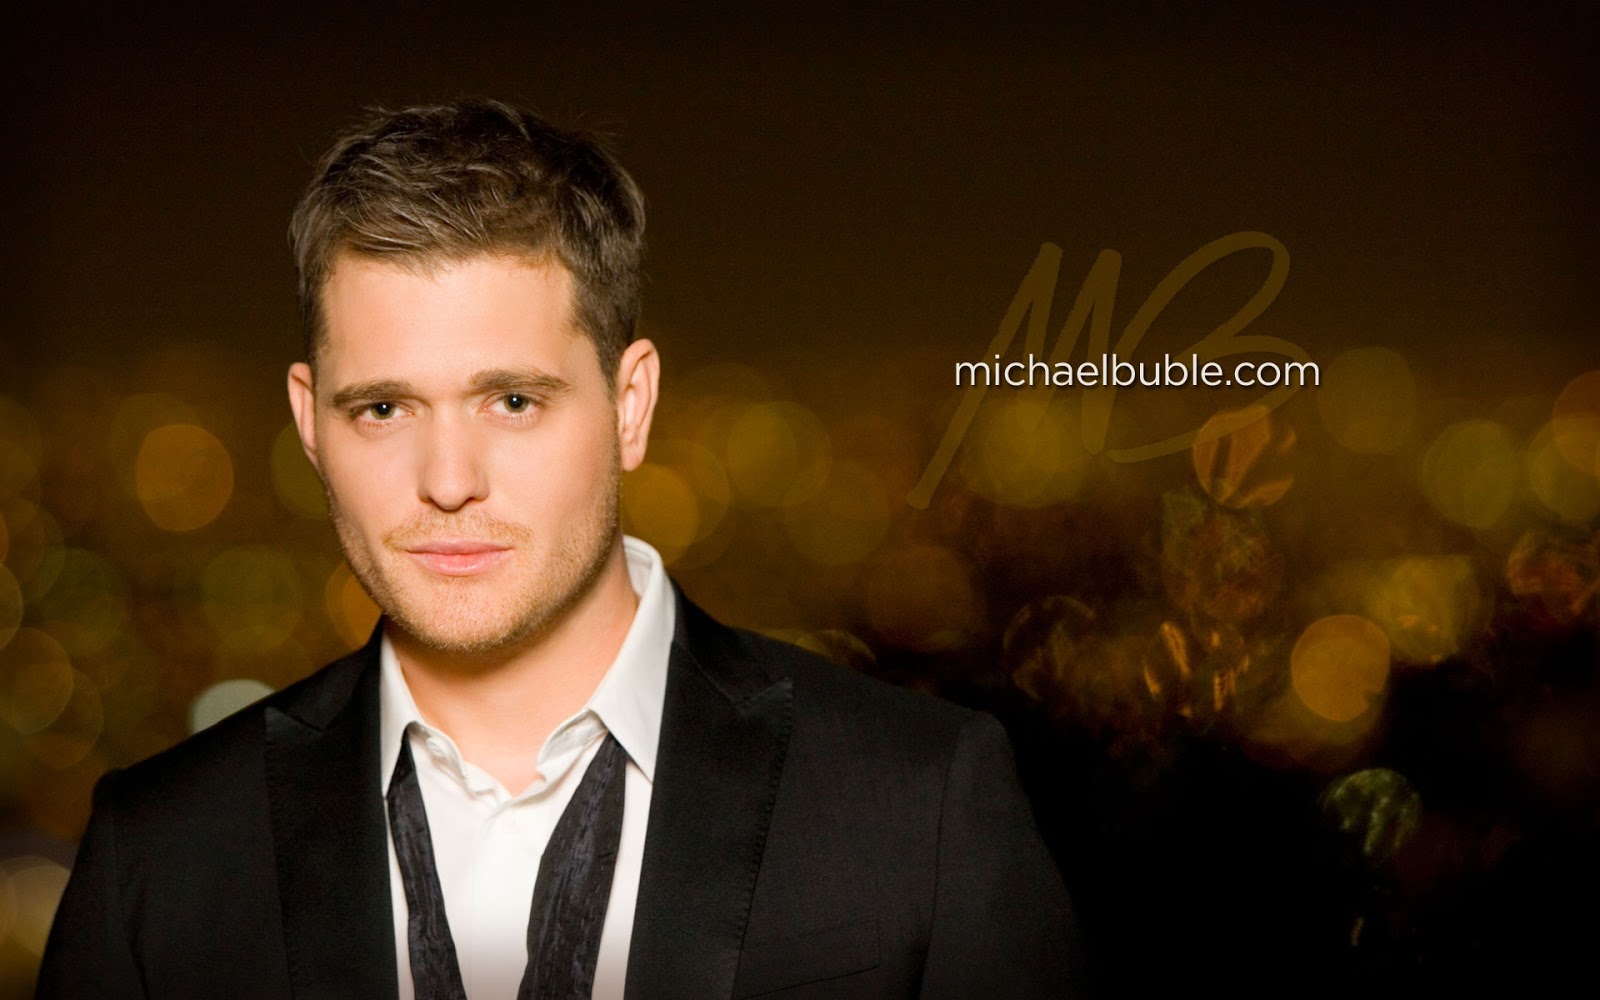 Home (Let me go home) by Michael Buble - LYRICS